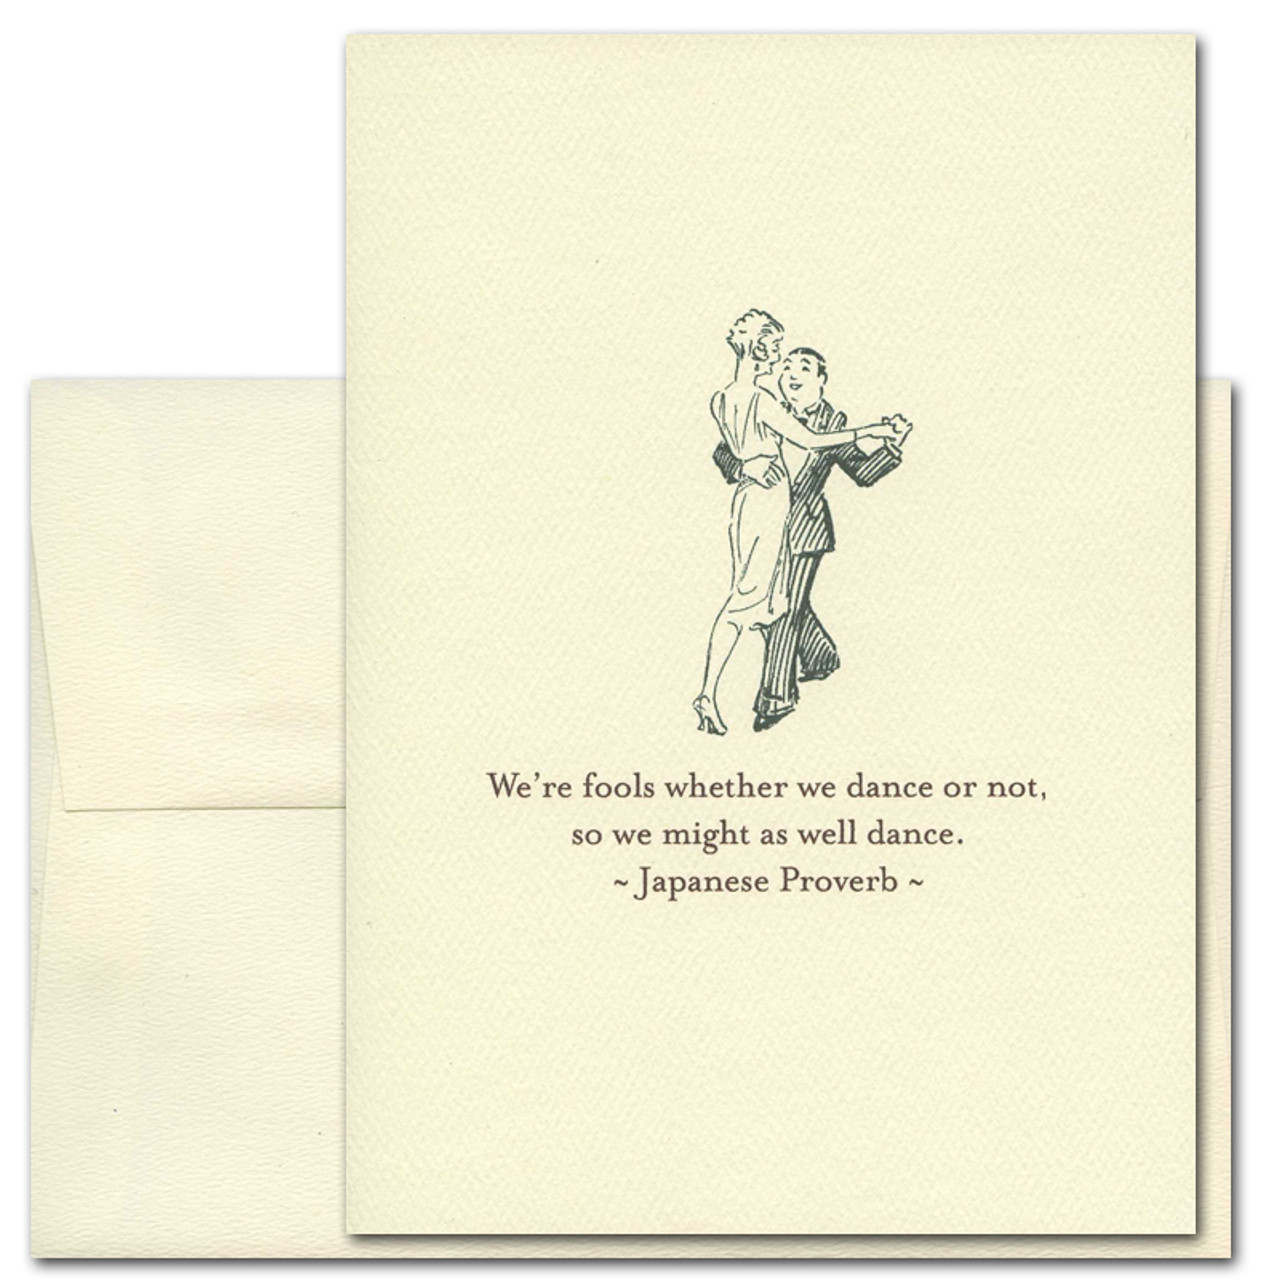 """Quotation Card """"Dance: Japanese Proverb"""" Cover shows old fashioned man and woman dancing with the Japanese Proverb: """"We're fools whether we dance or not, so we might as well dance."""""""